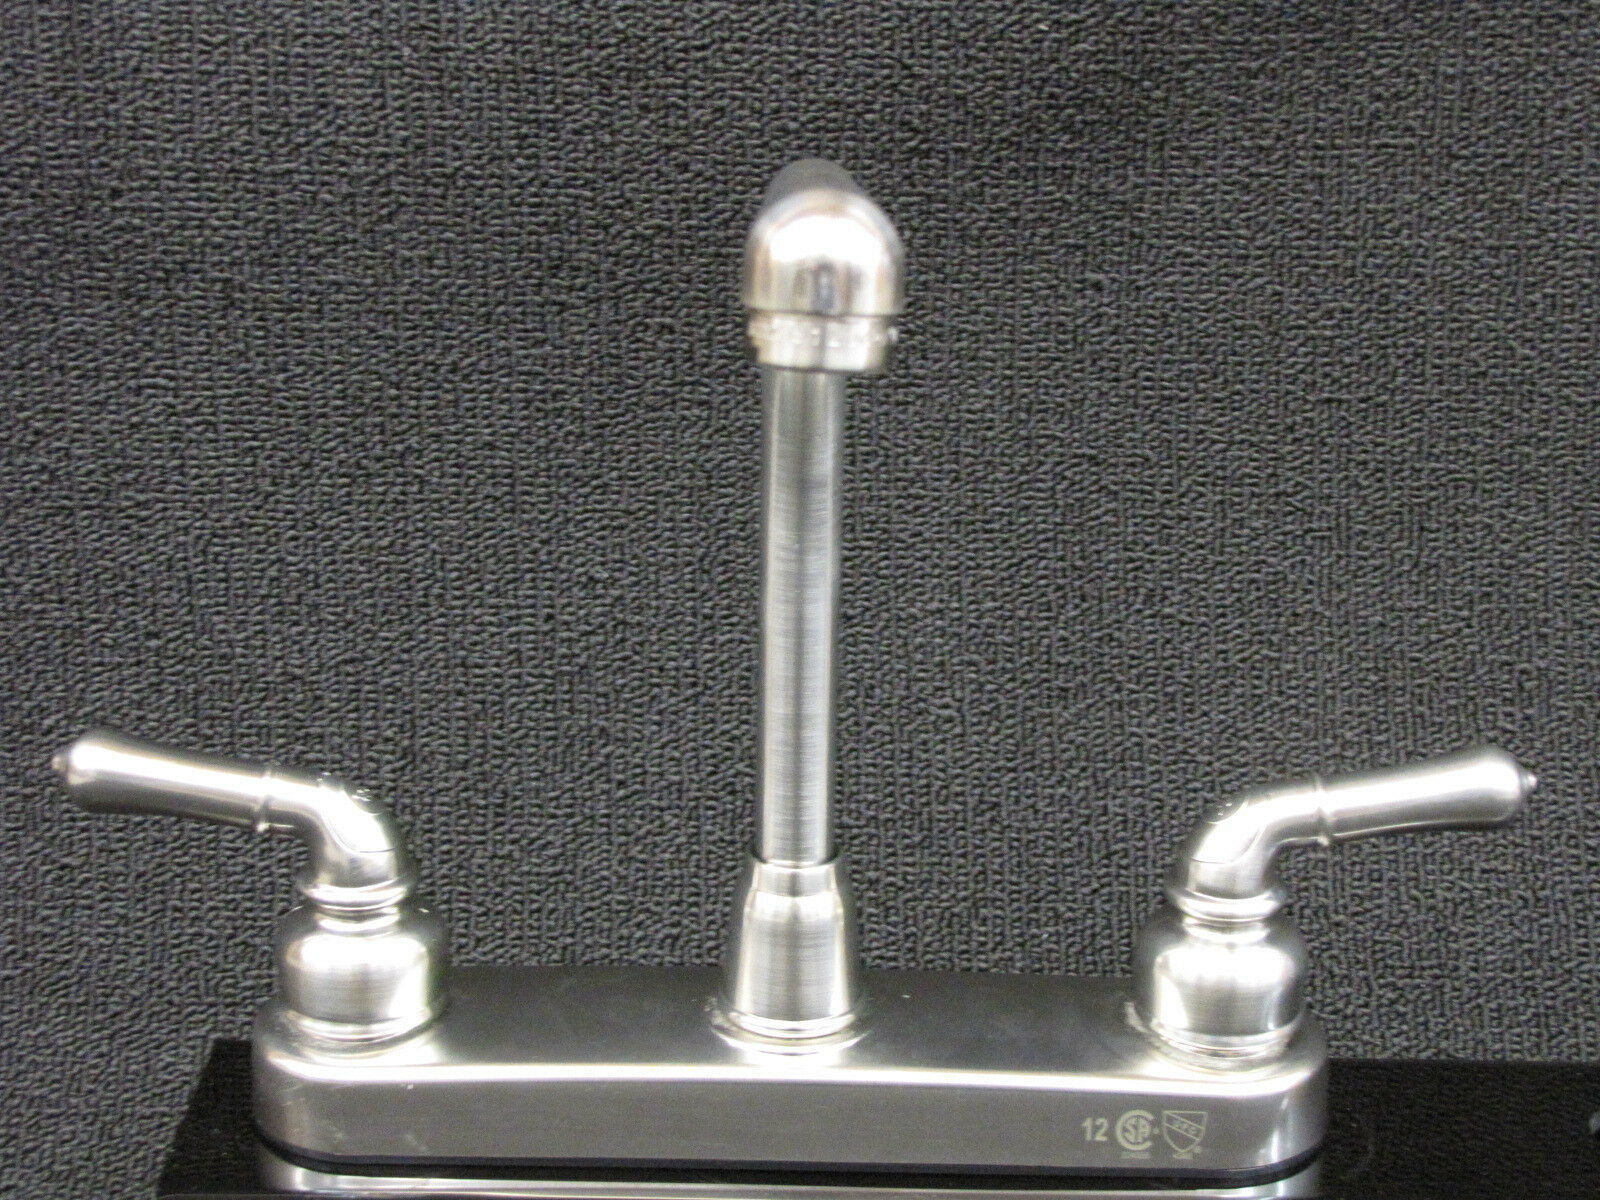 Best Kitchen Sinks And Faucets Mobile Home Kitchen Sinks And Faucets Mobile Awesome Home